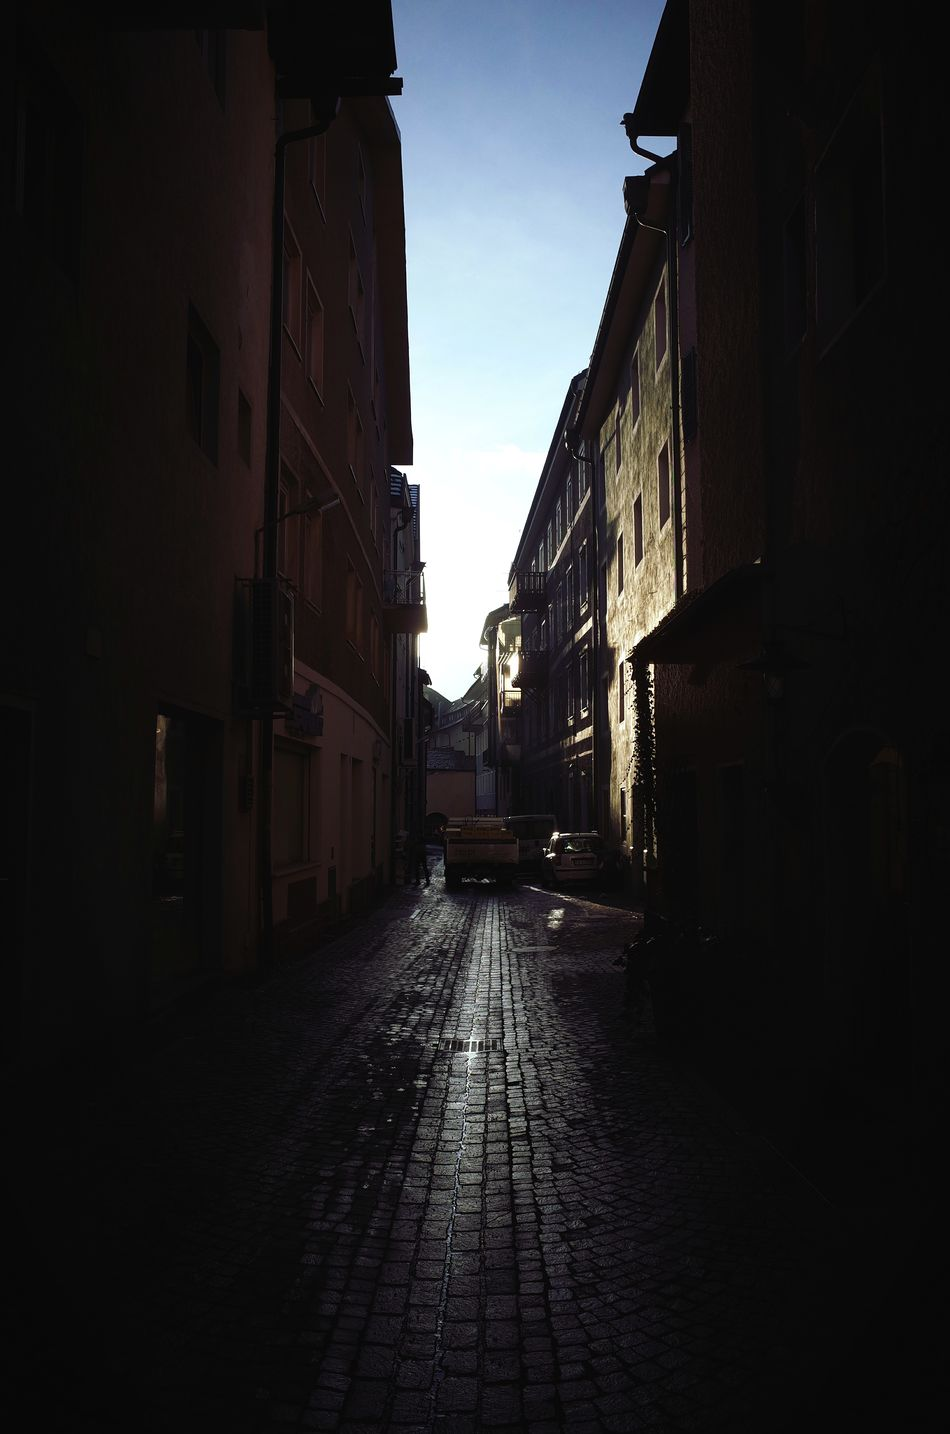 Street City Building Exterior Architecture Built Structure Outdoors Sky No People Day Alley City Street Backstreets & Alleyways Urban Geometry Urban Exploration Urban Landscape City Miles Away Cobblestone Streets Daily Business  City Life Dolomites South Tyrol Südtirol The City Light